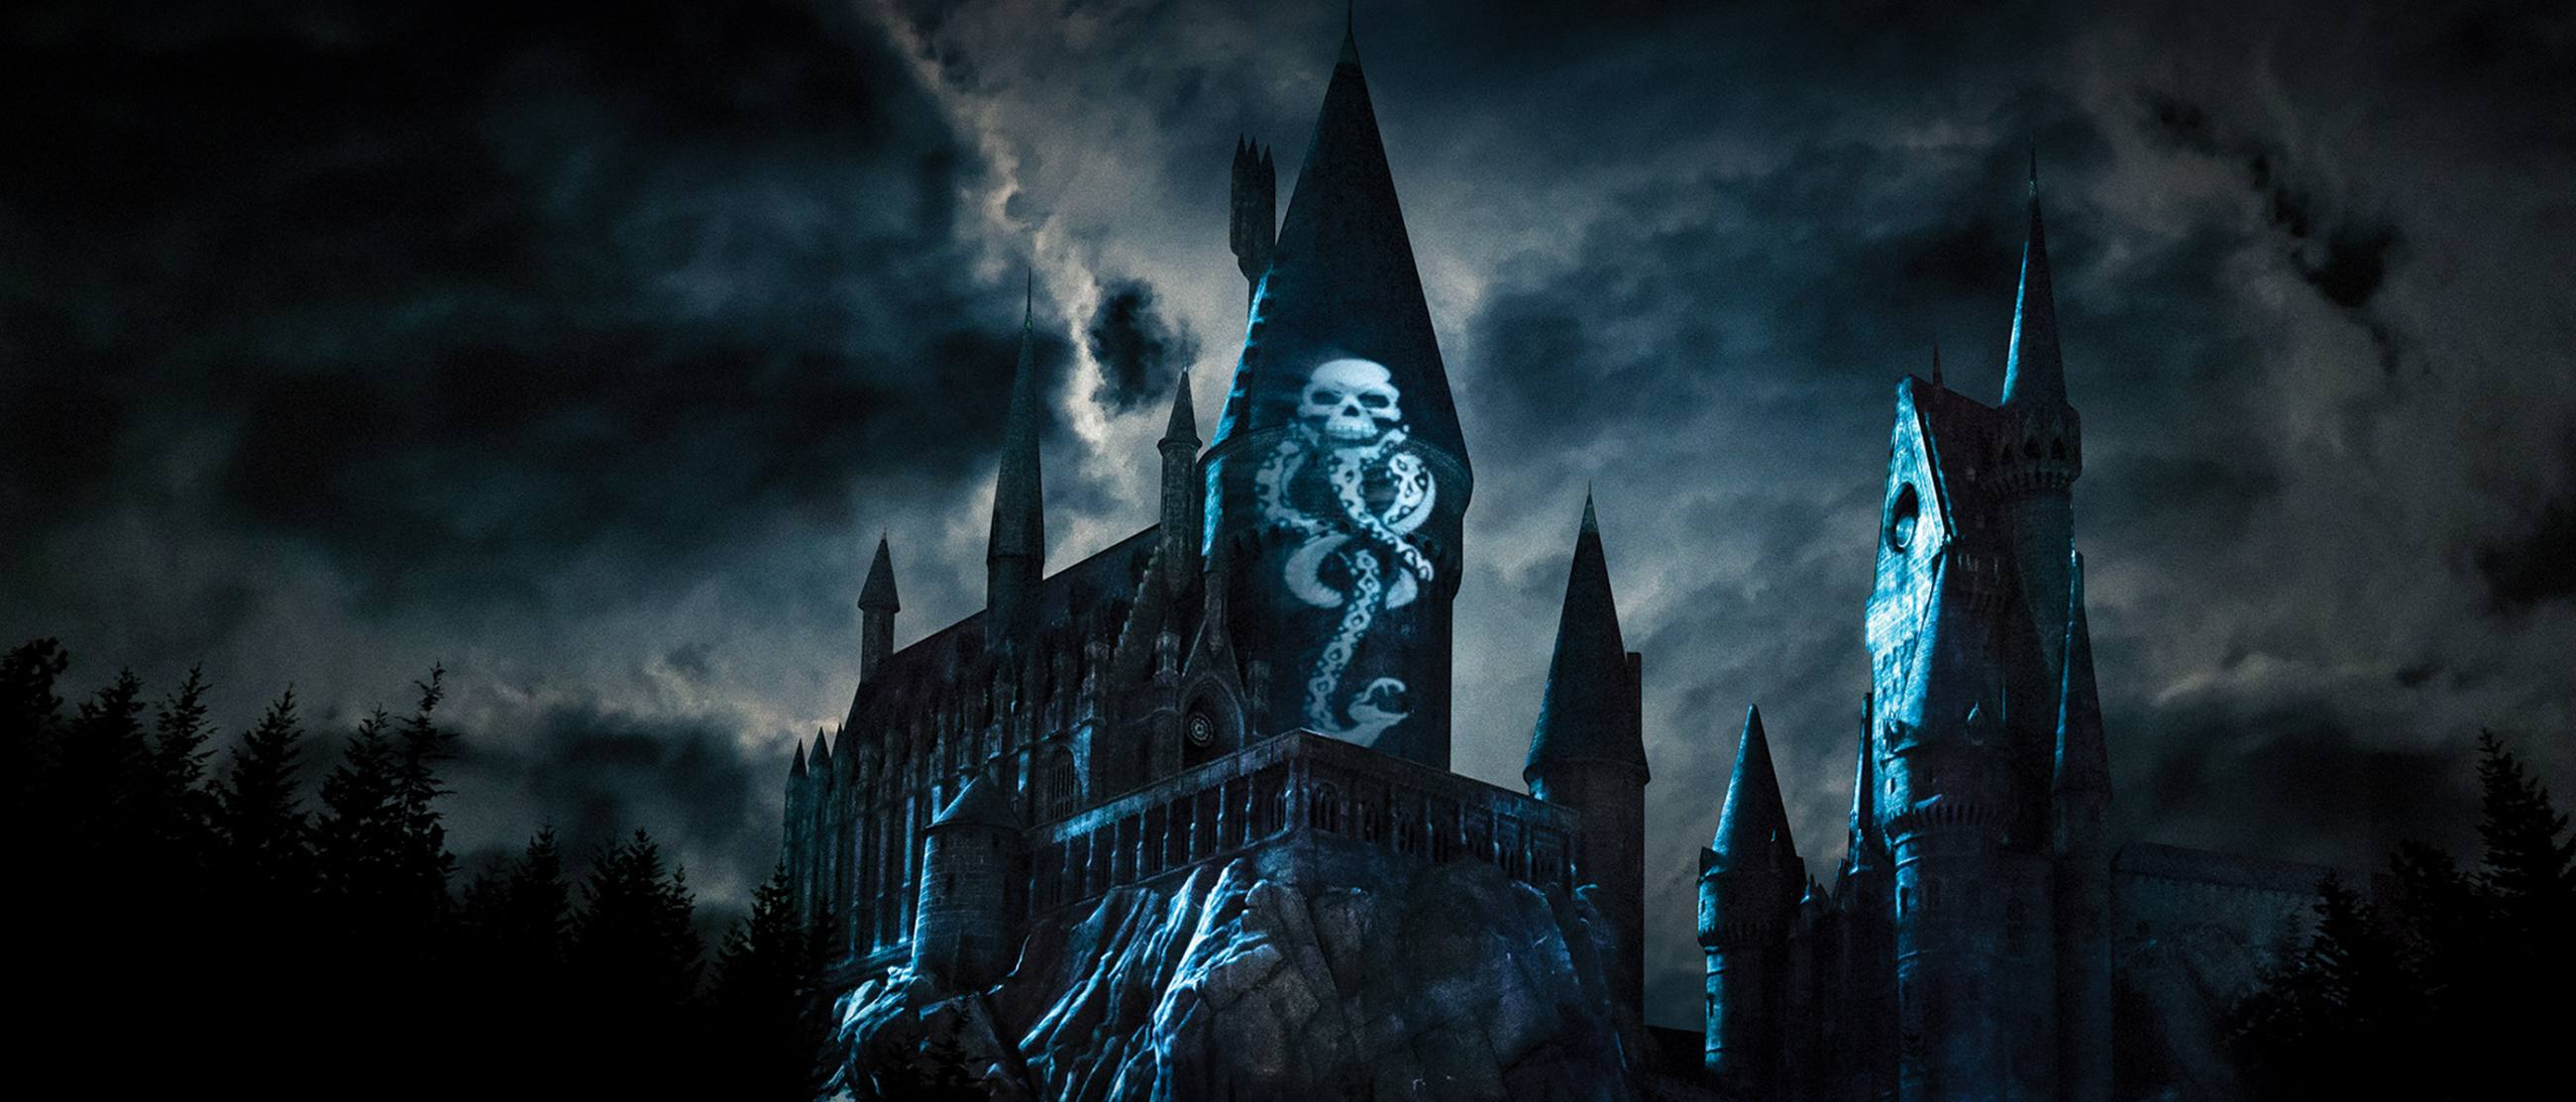 The Dark Arts at Hogwarts™ Castle in The Wizarding World of Harry Potter™